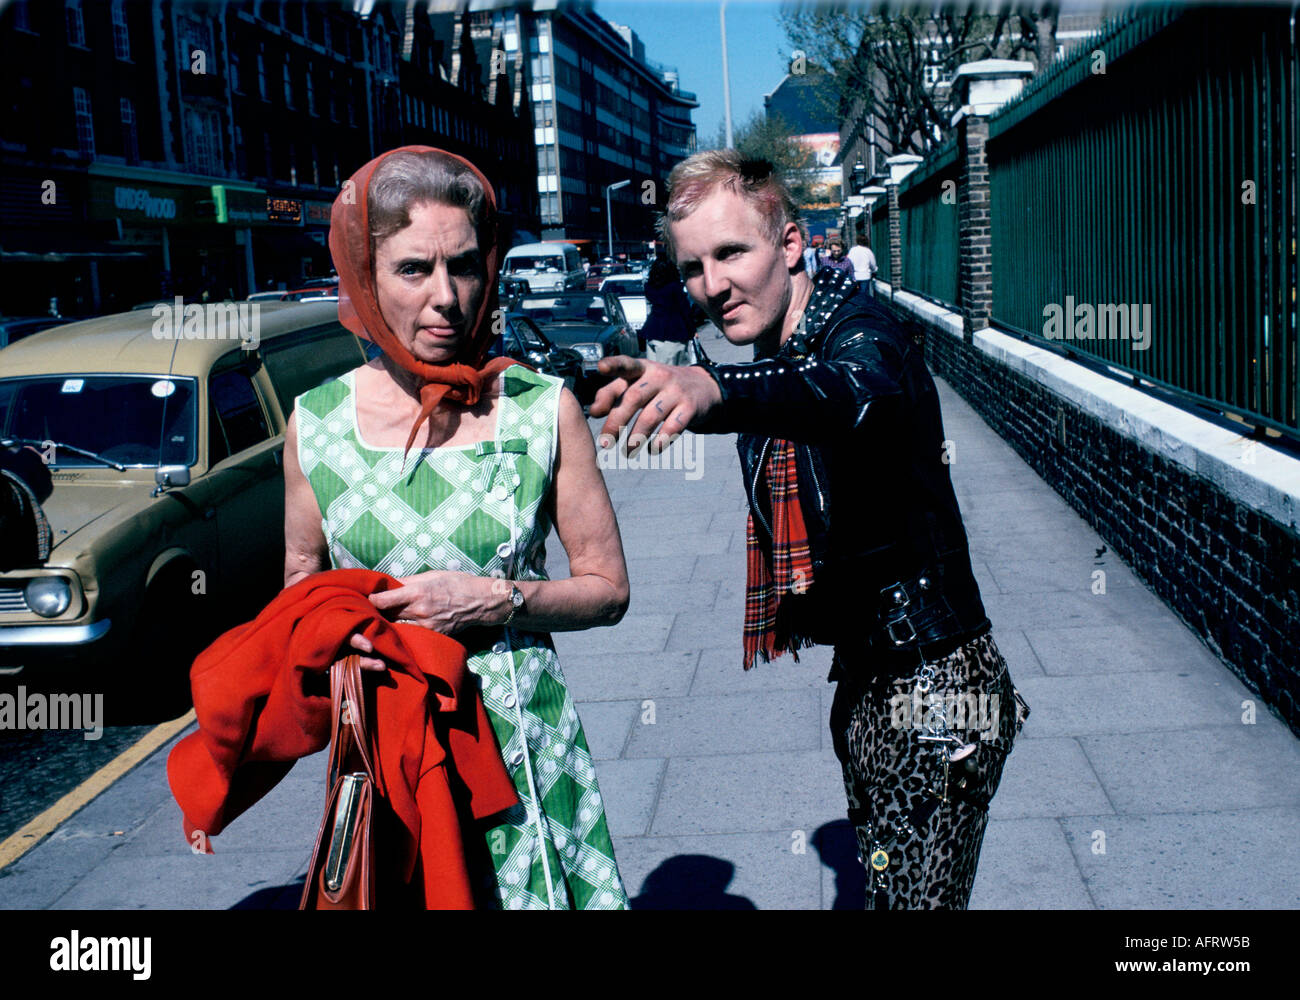 Punk helping passer by on Kings road Chelsea London circa 1975. woman sticking tongue out at photographer 1970s - Stock Image